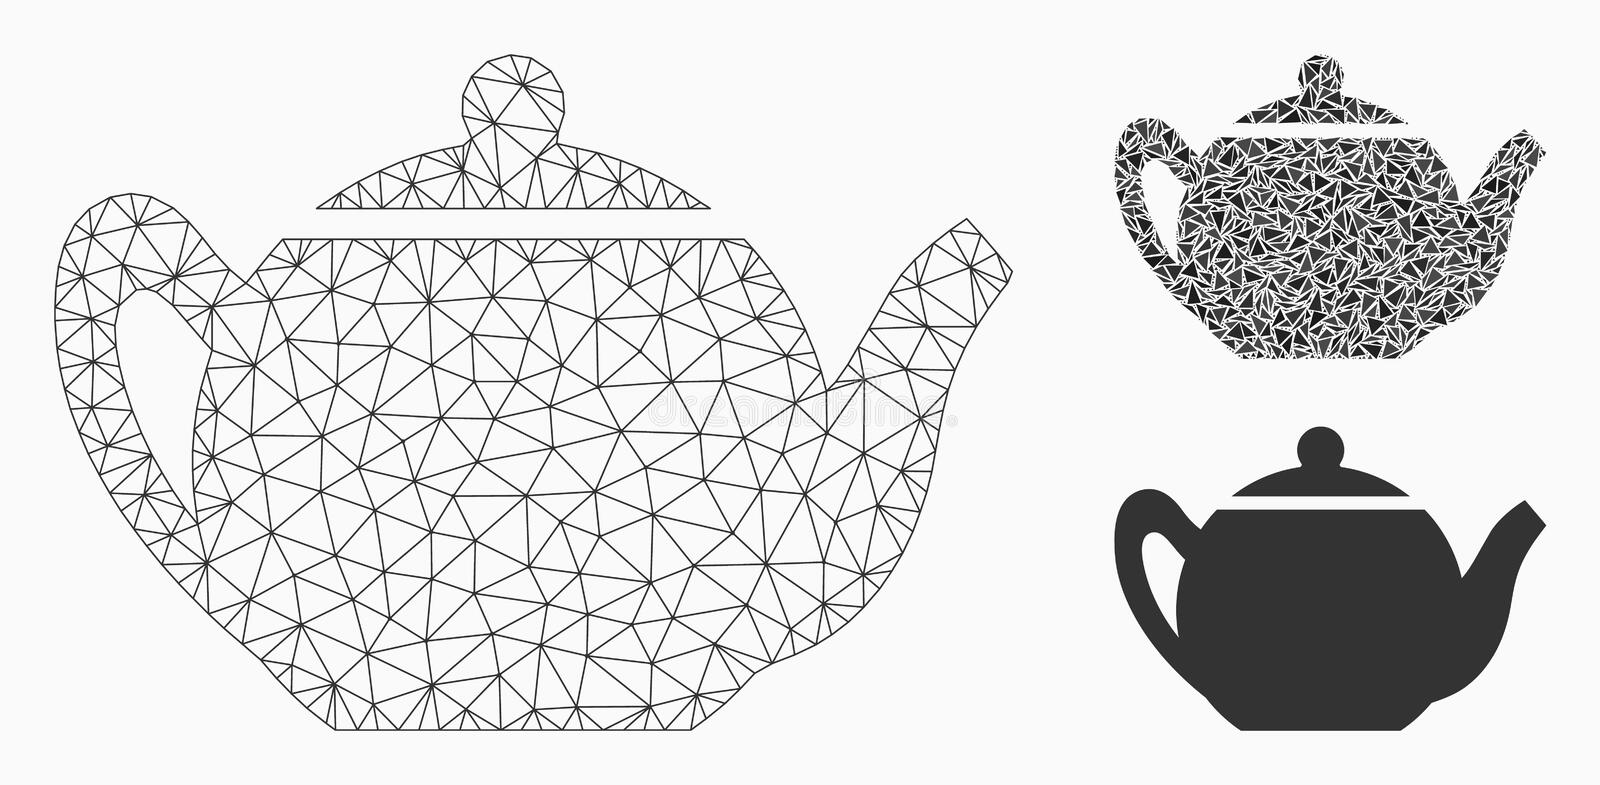 Teapot Vector Mesh Carcass Model and Triangle Mosaic Icon. Mesh teapot model with triangle mosaic icon. Wire carcass triangular network of teapot. Vector mosaic royalty free illustration